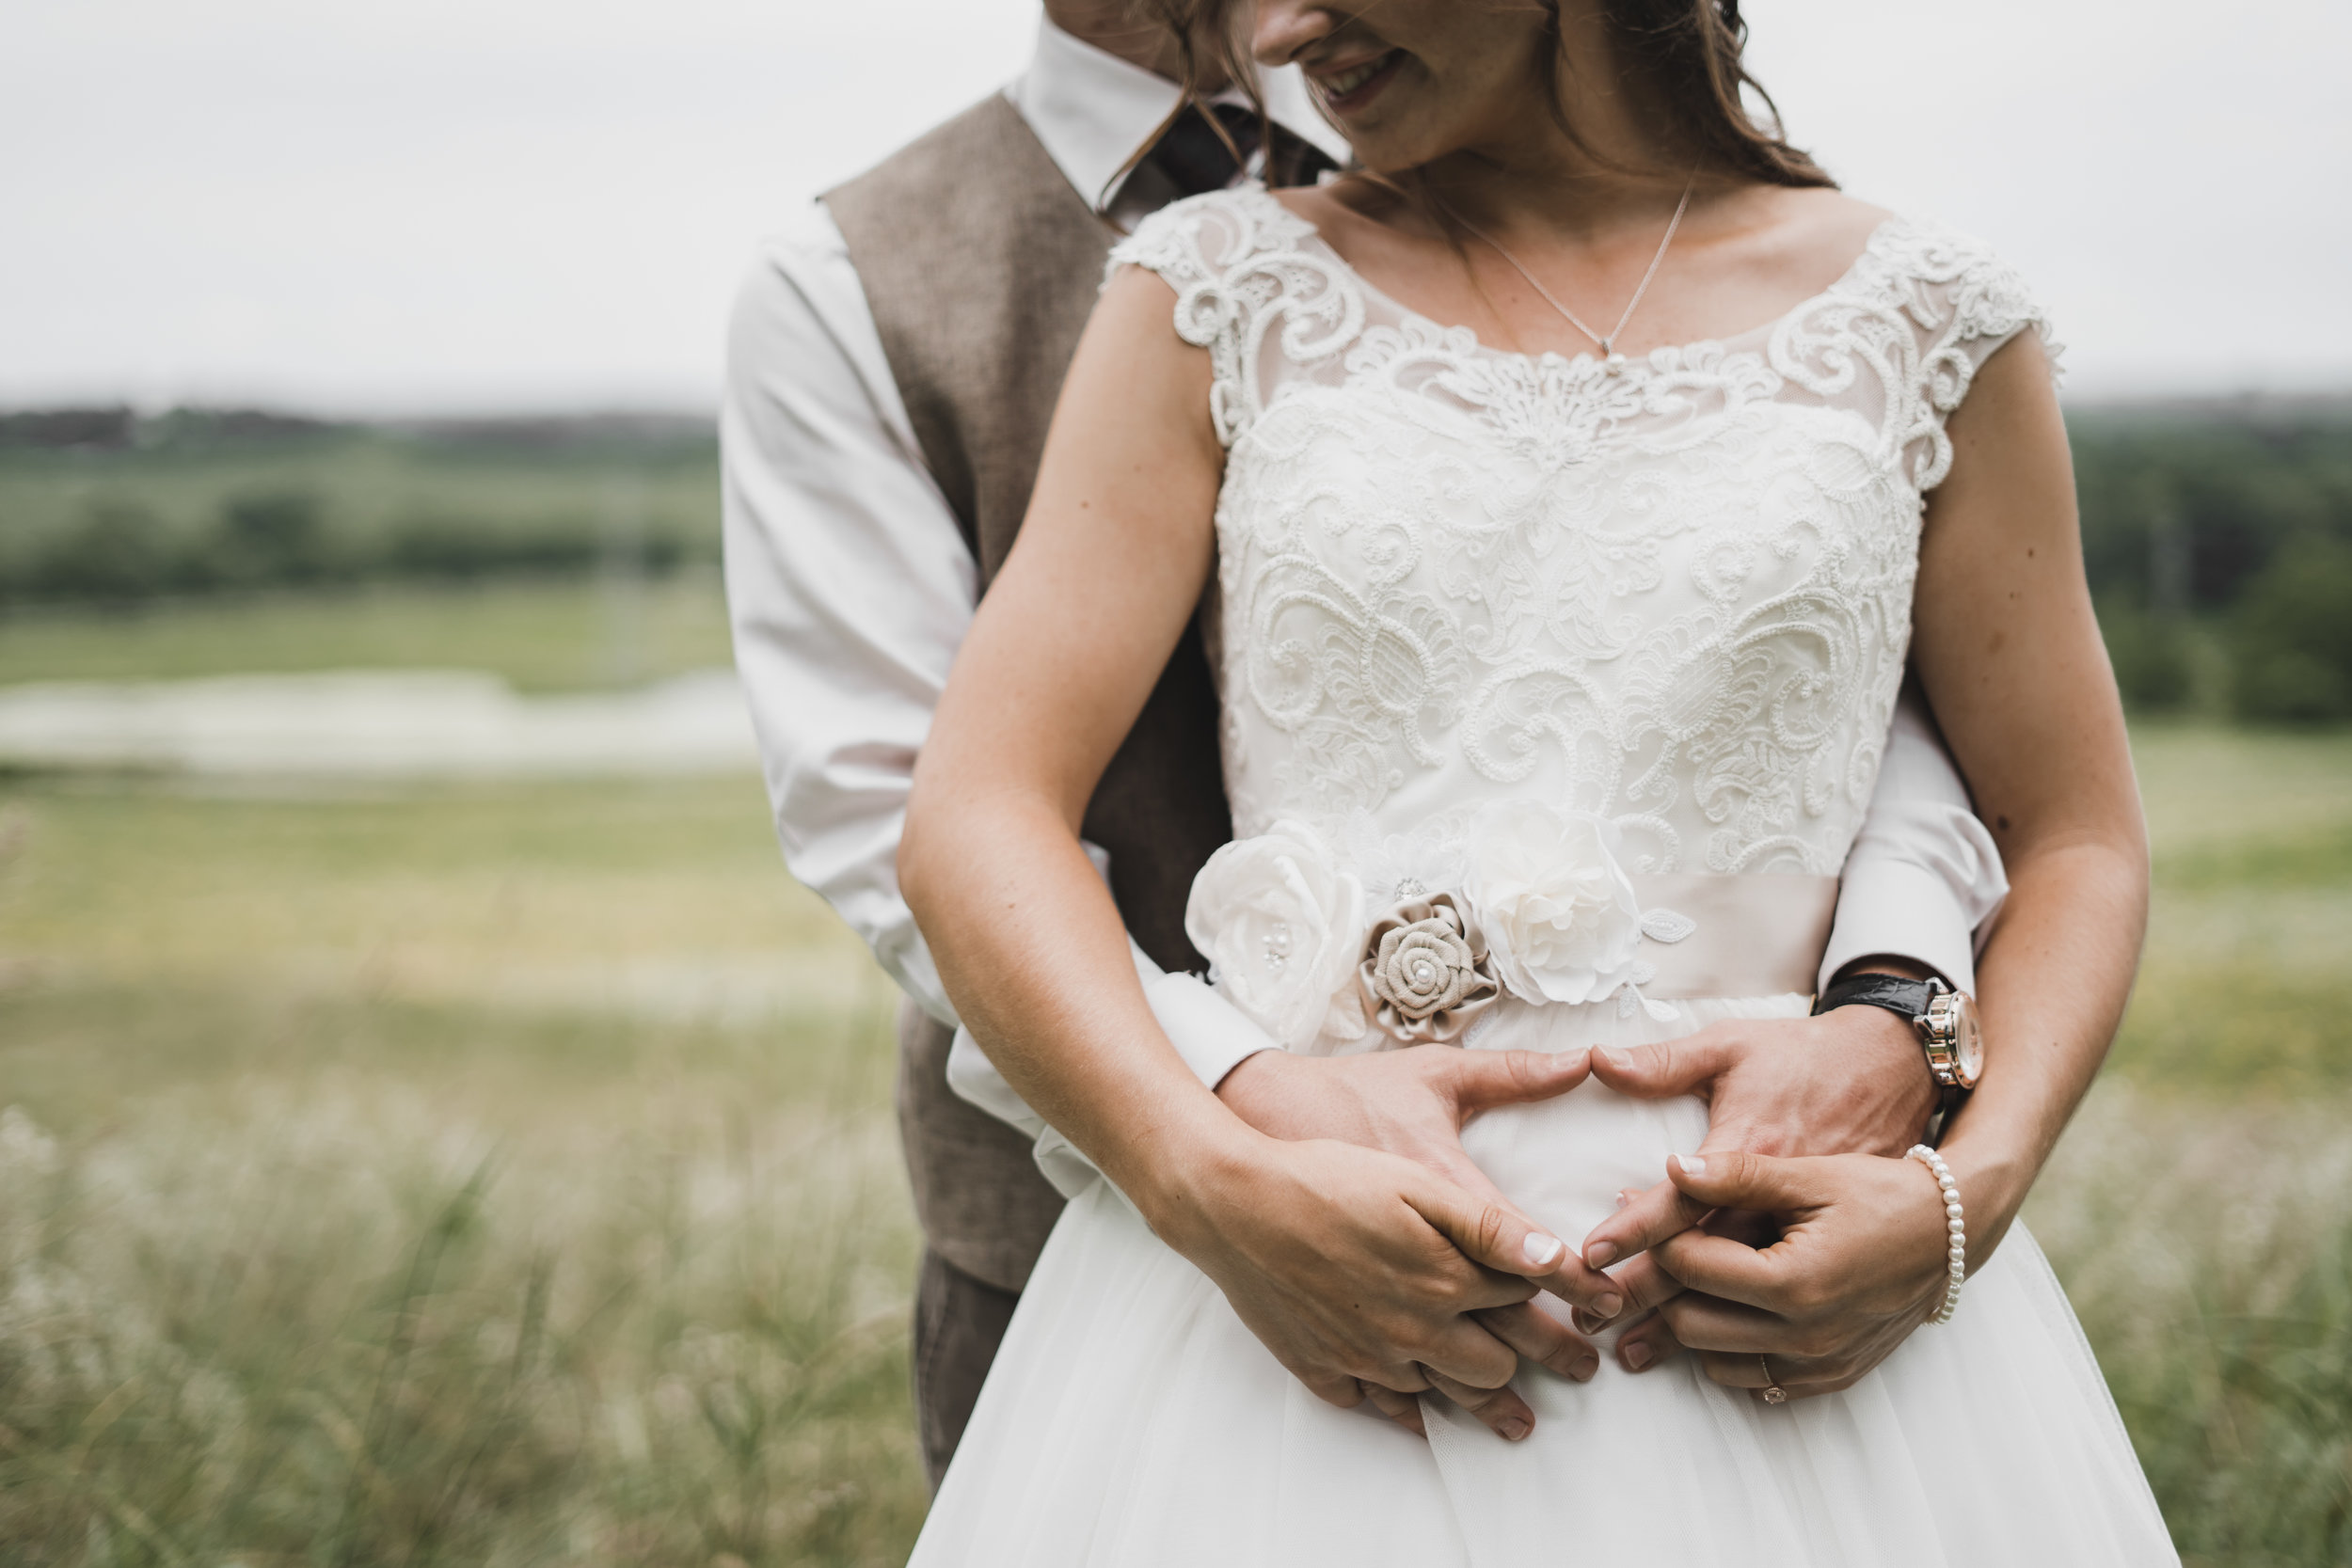 Wedding Photography - Both local and across the globe!